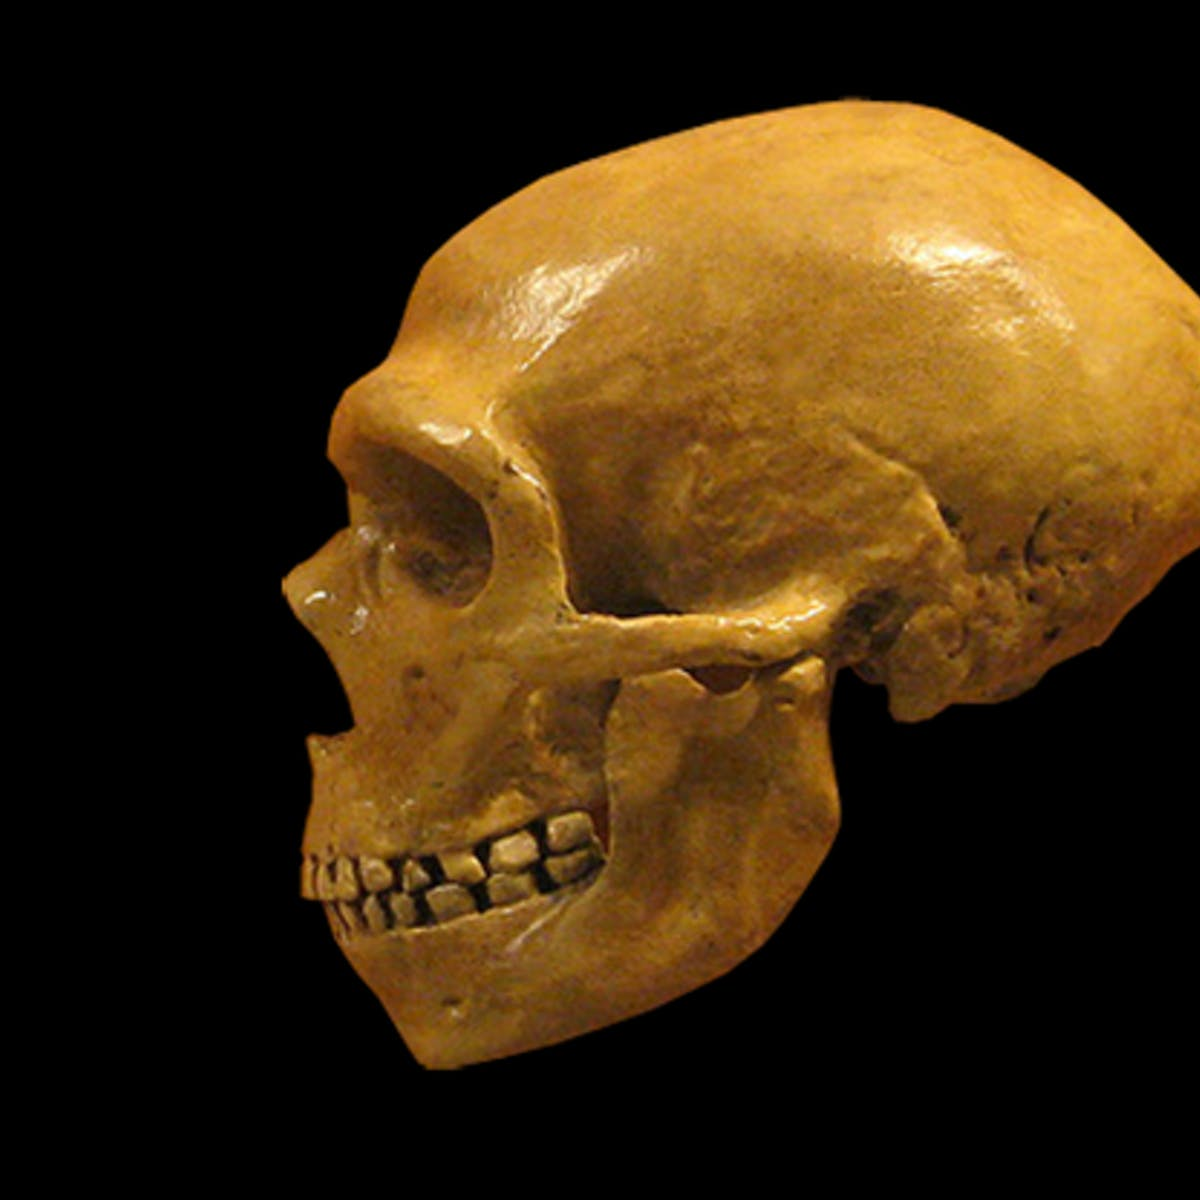 A common ear infection may have killed the Neanderthals